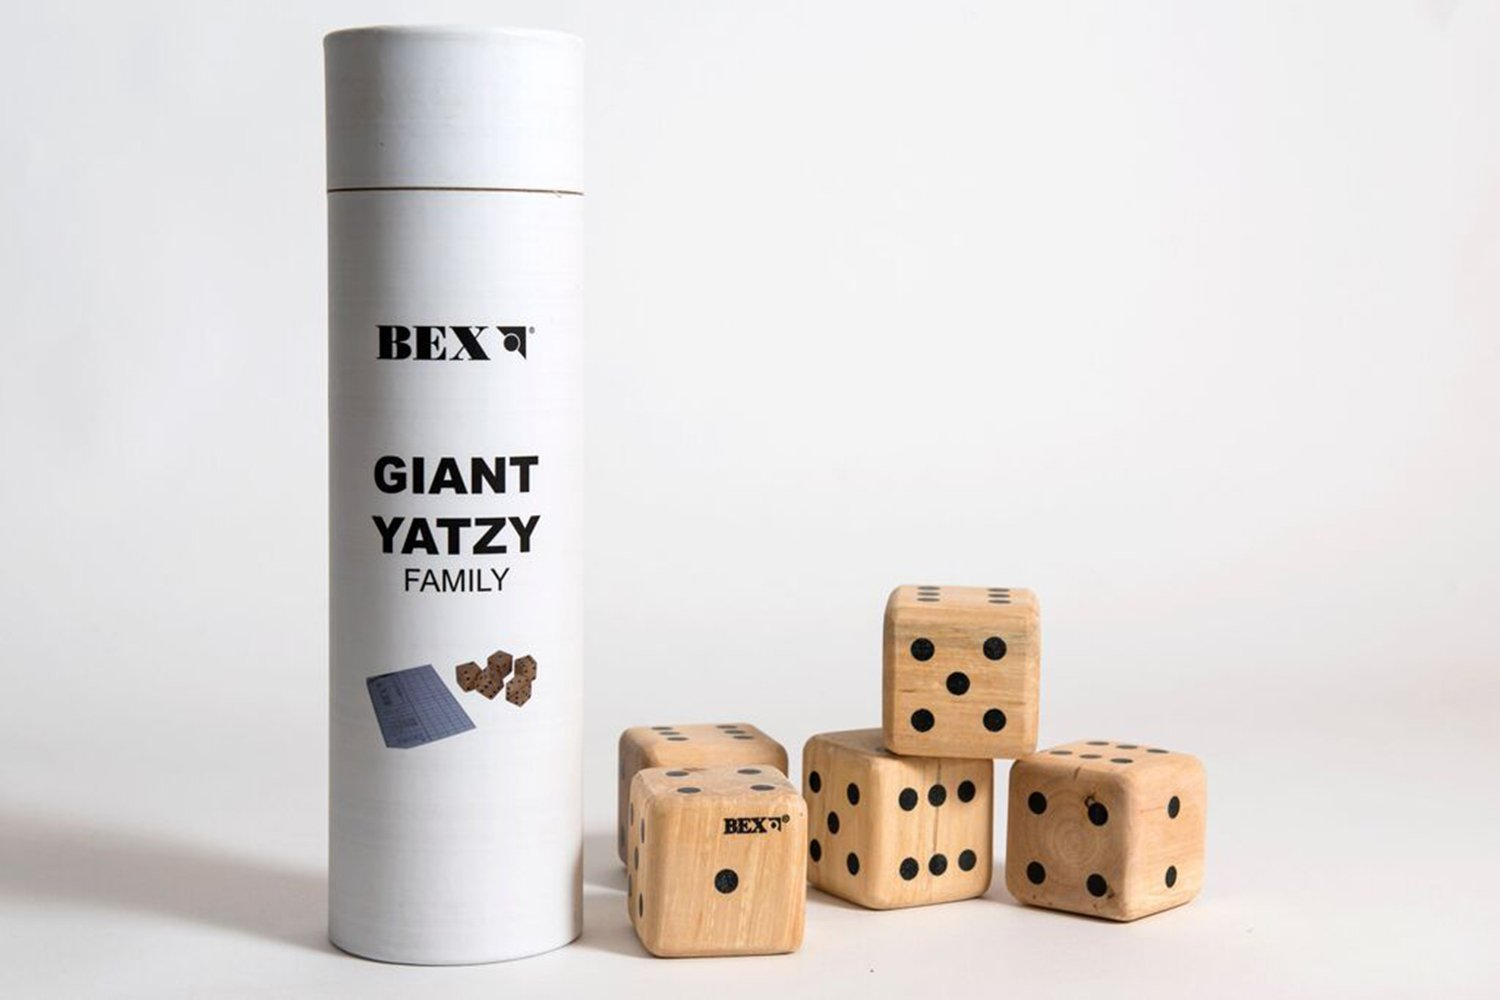 Image of Bex Giant Yatzy Family Game.